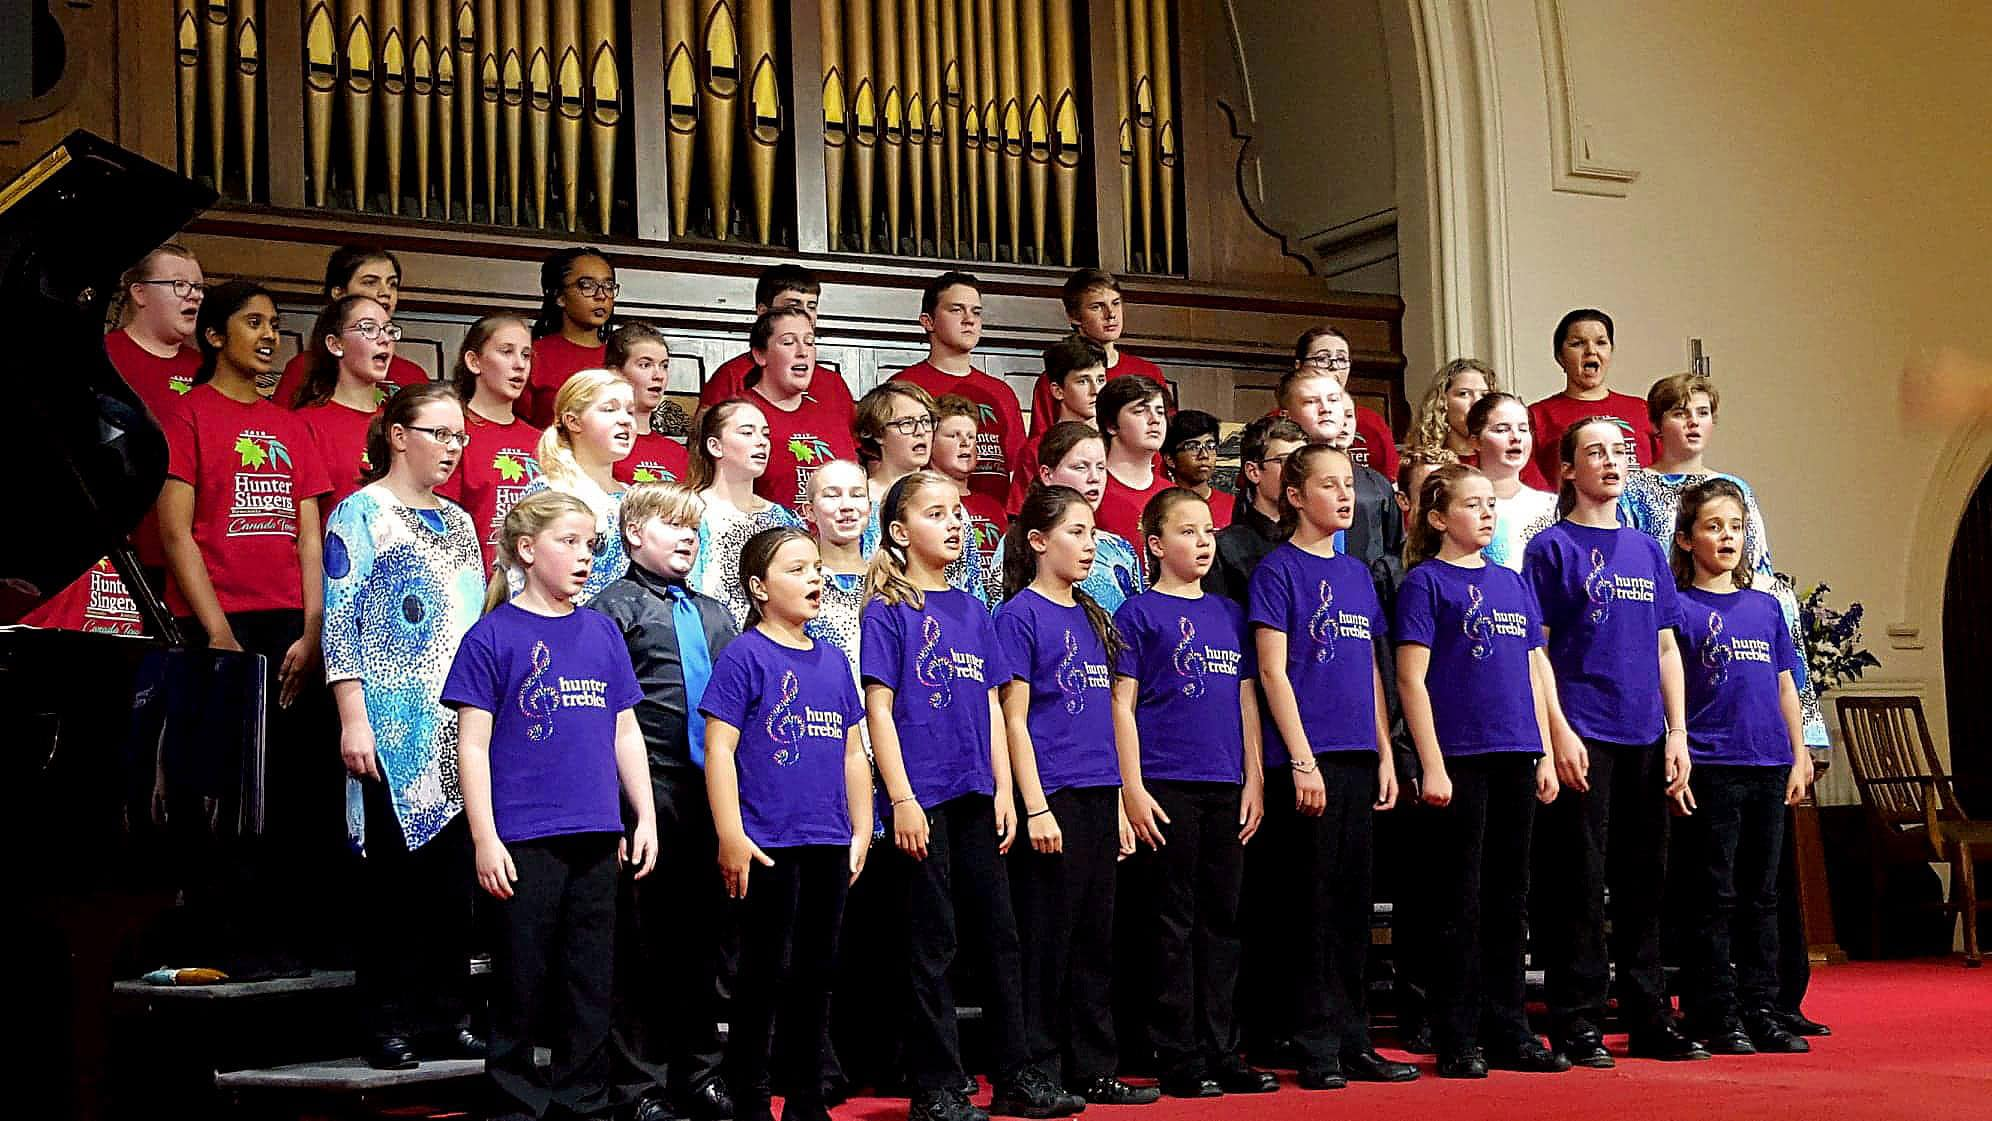 Hunter Singers and Hunter Trebles Choirs singing in concert